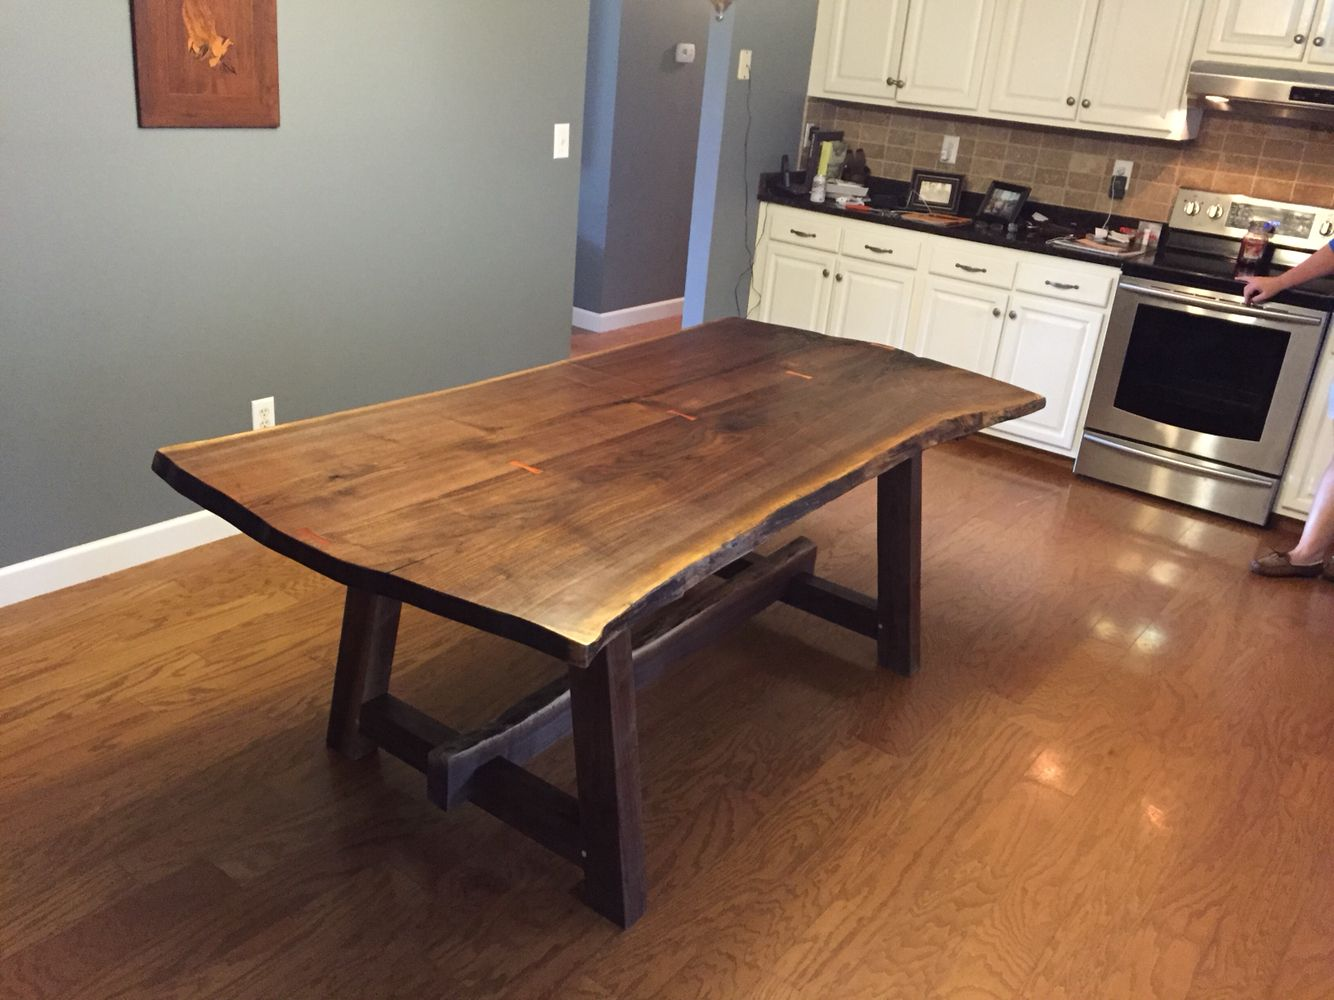 Live Edge Elm Table And Matching Benches Live Edge Dining Table Live Edge Furniture Live Edge Table